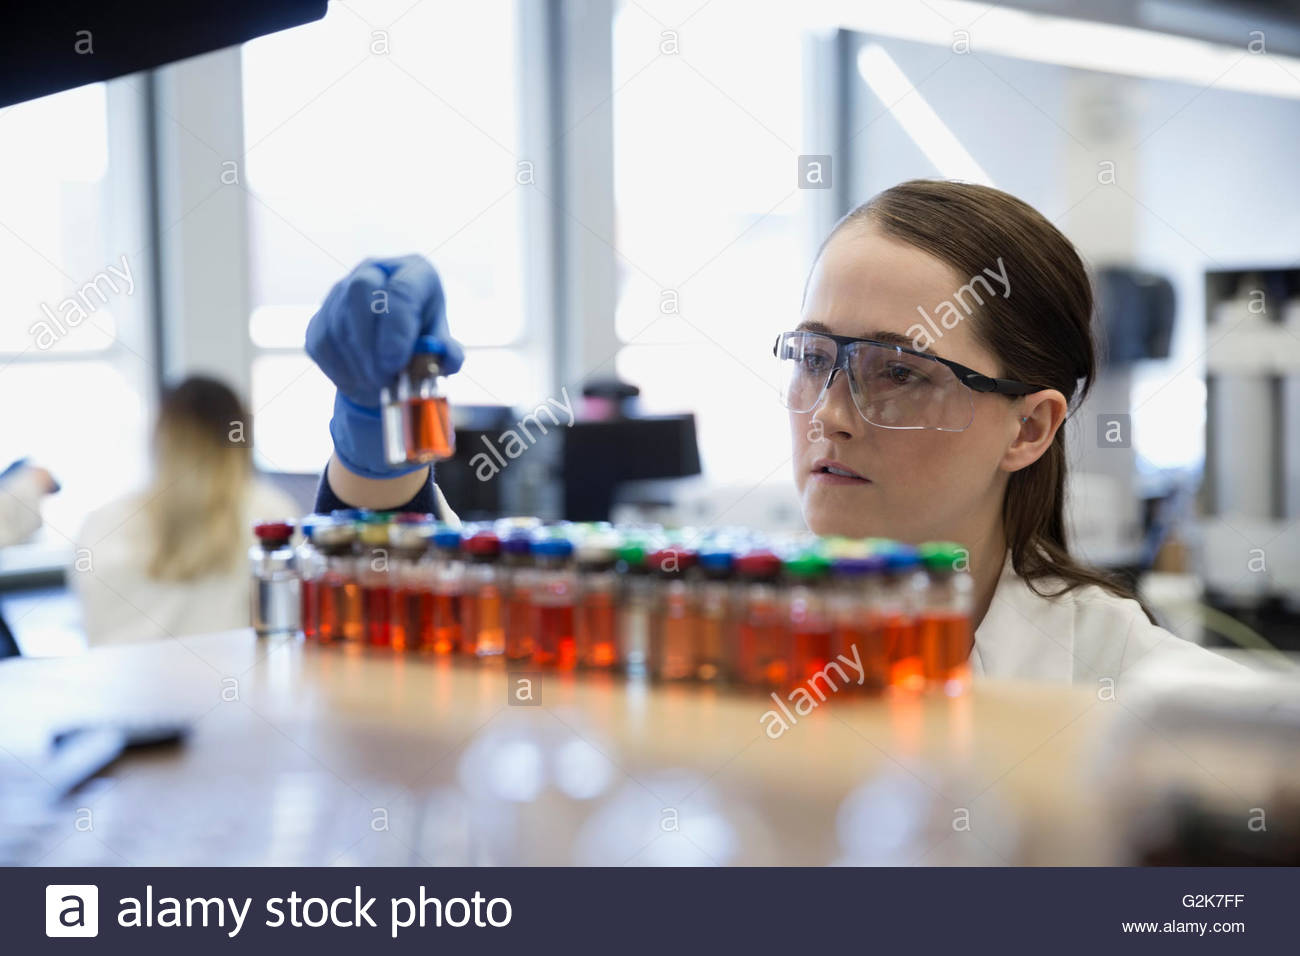 Scientist examining liquid samples in laboratory - Stock Image